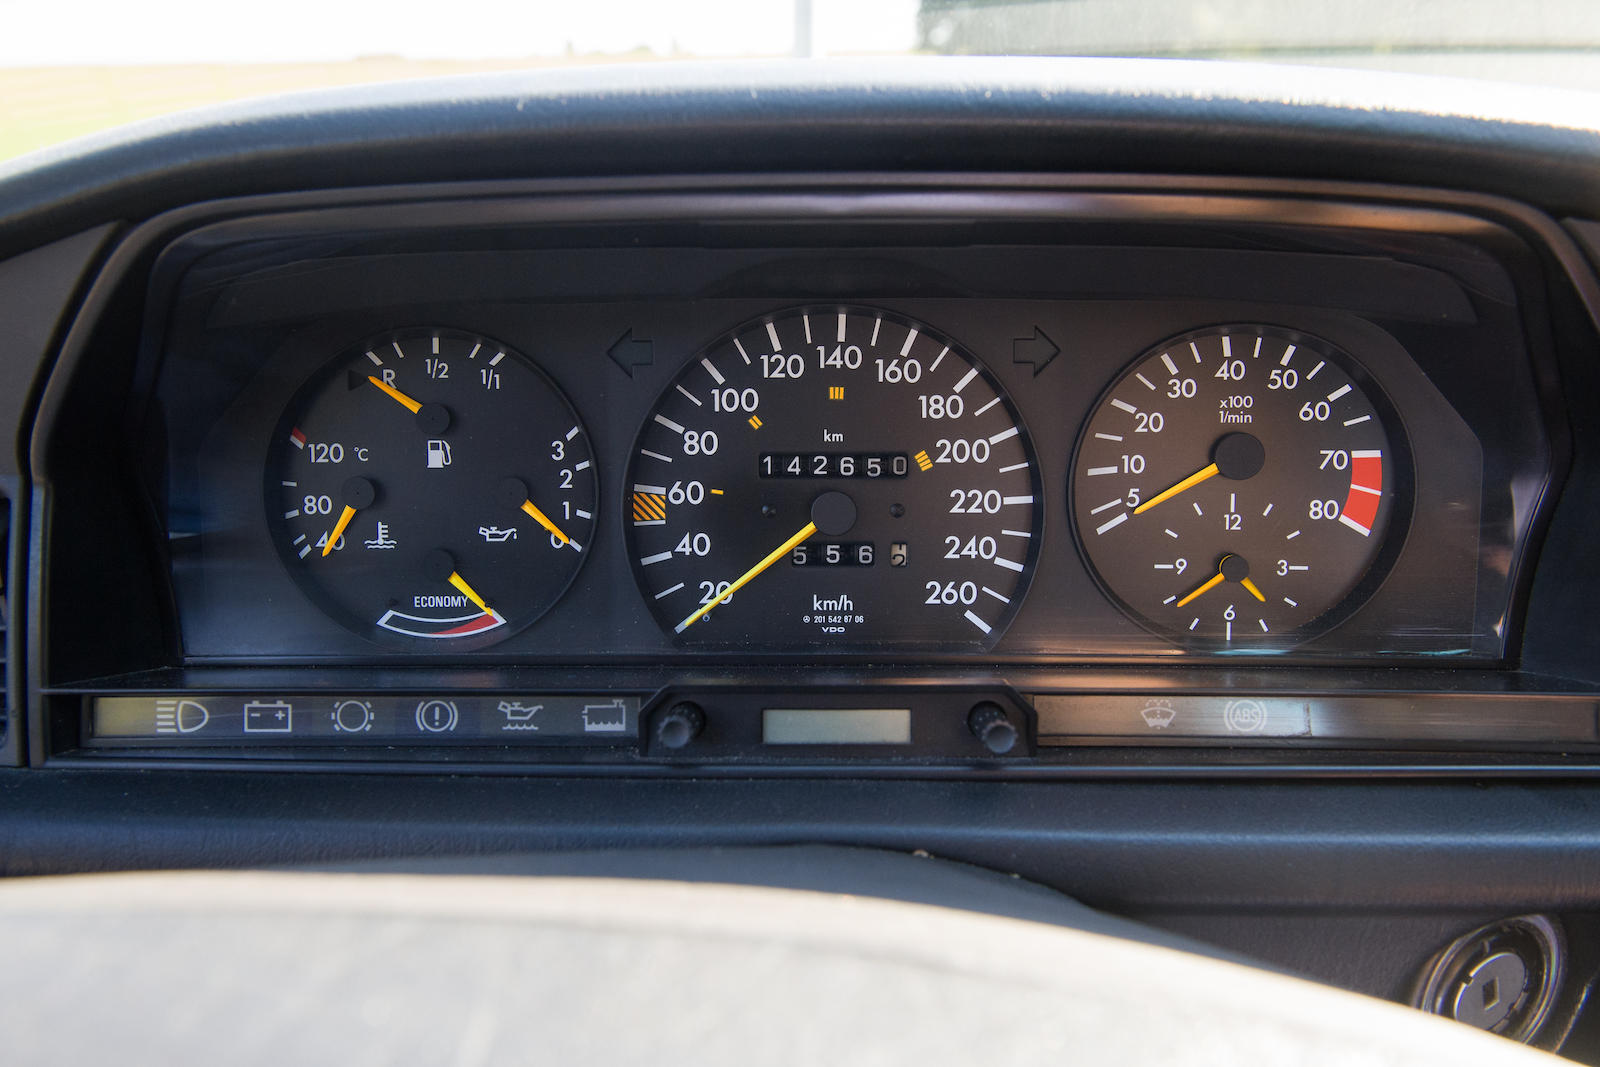 1985 Mercedes-Benz 190E 2.3-16 Sports Saloon gauges